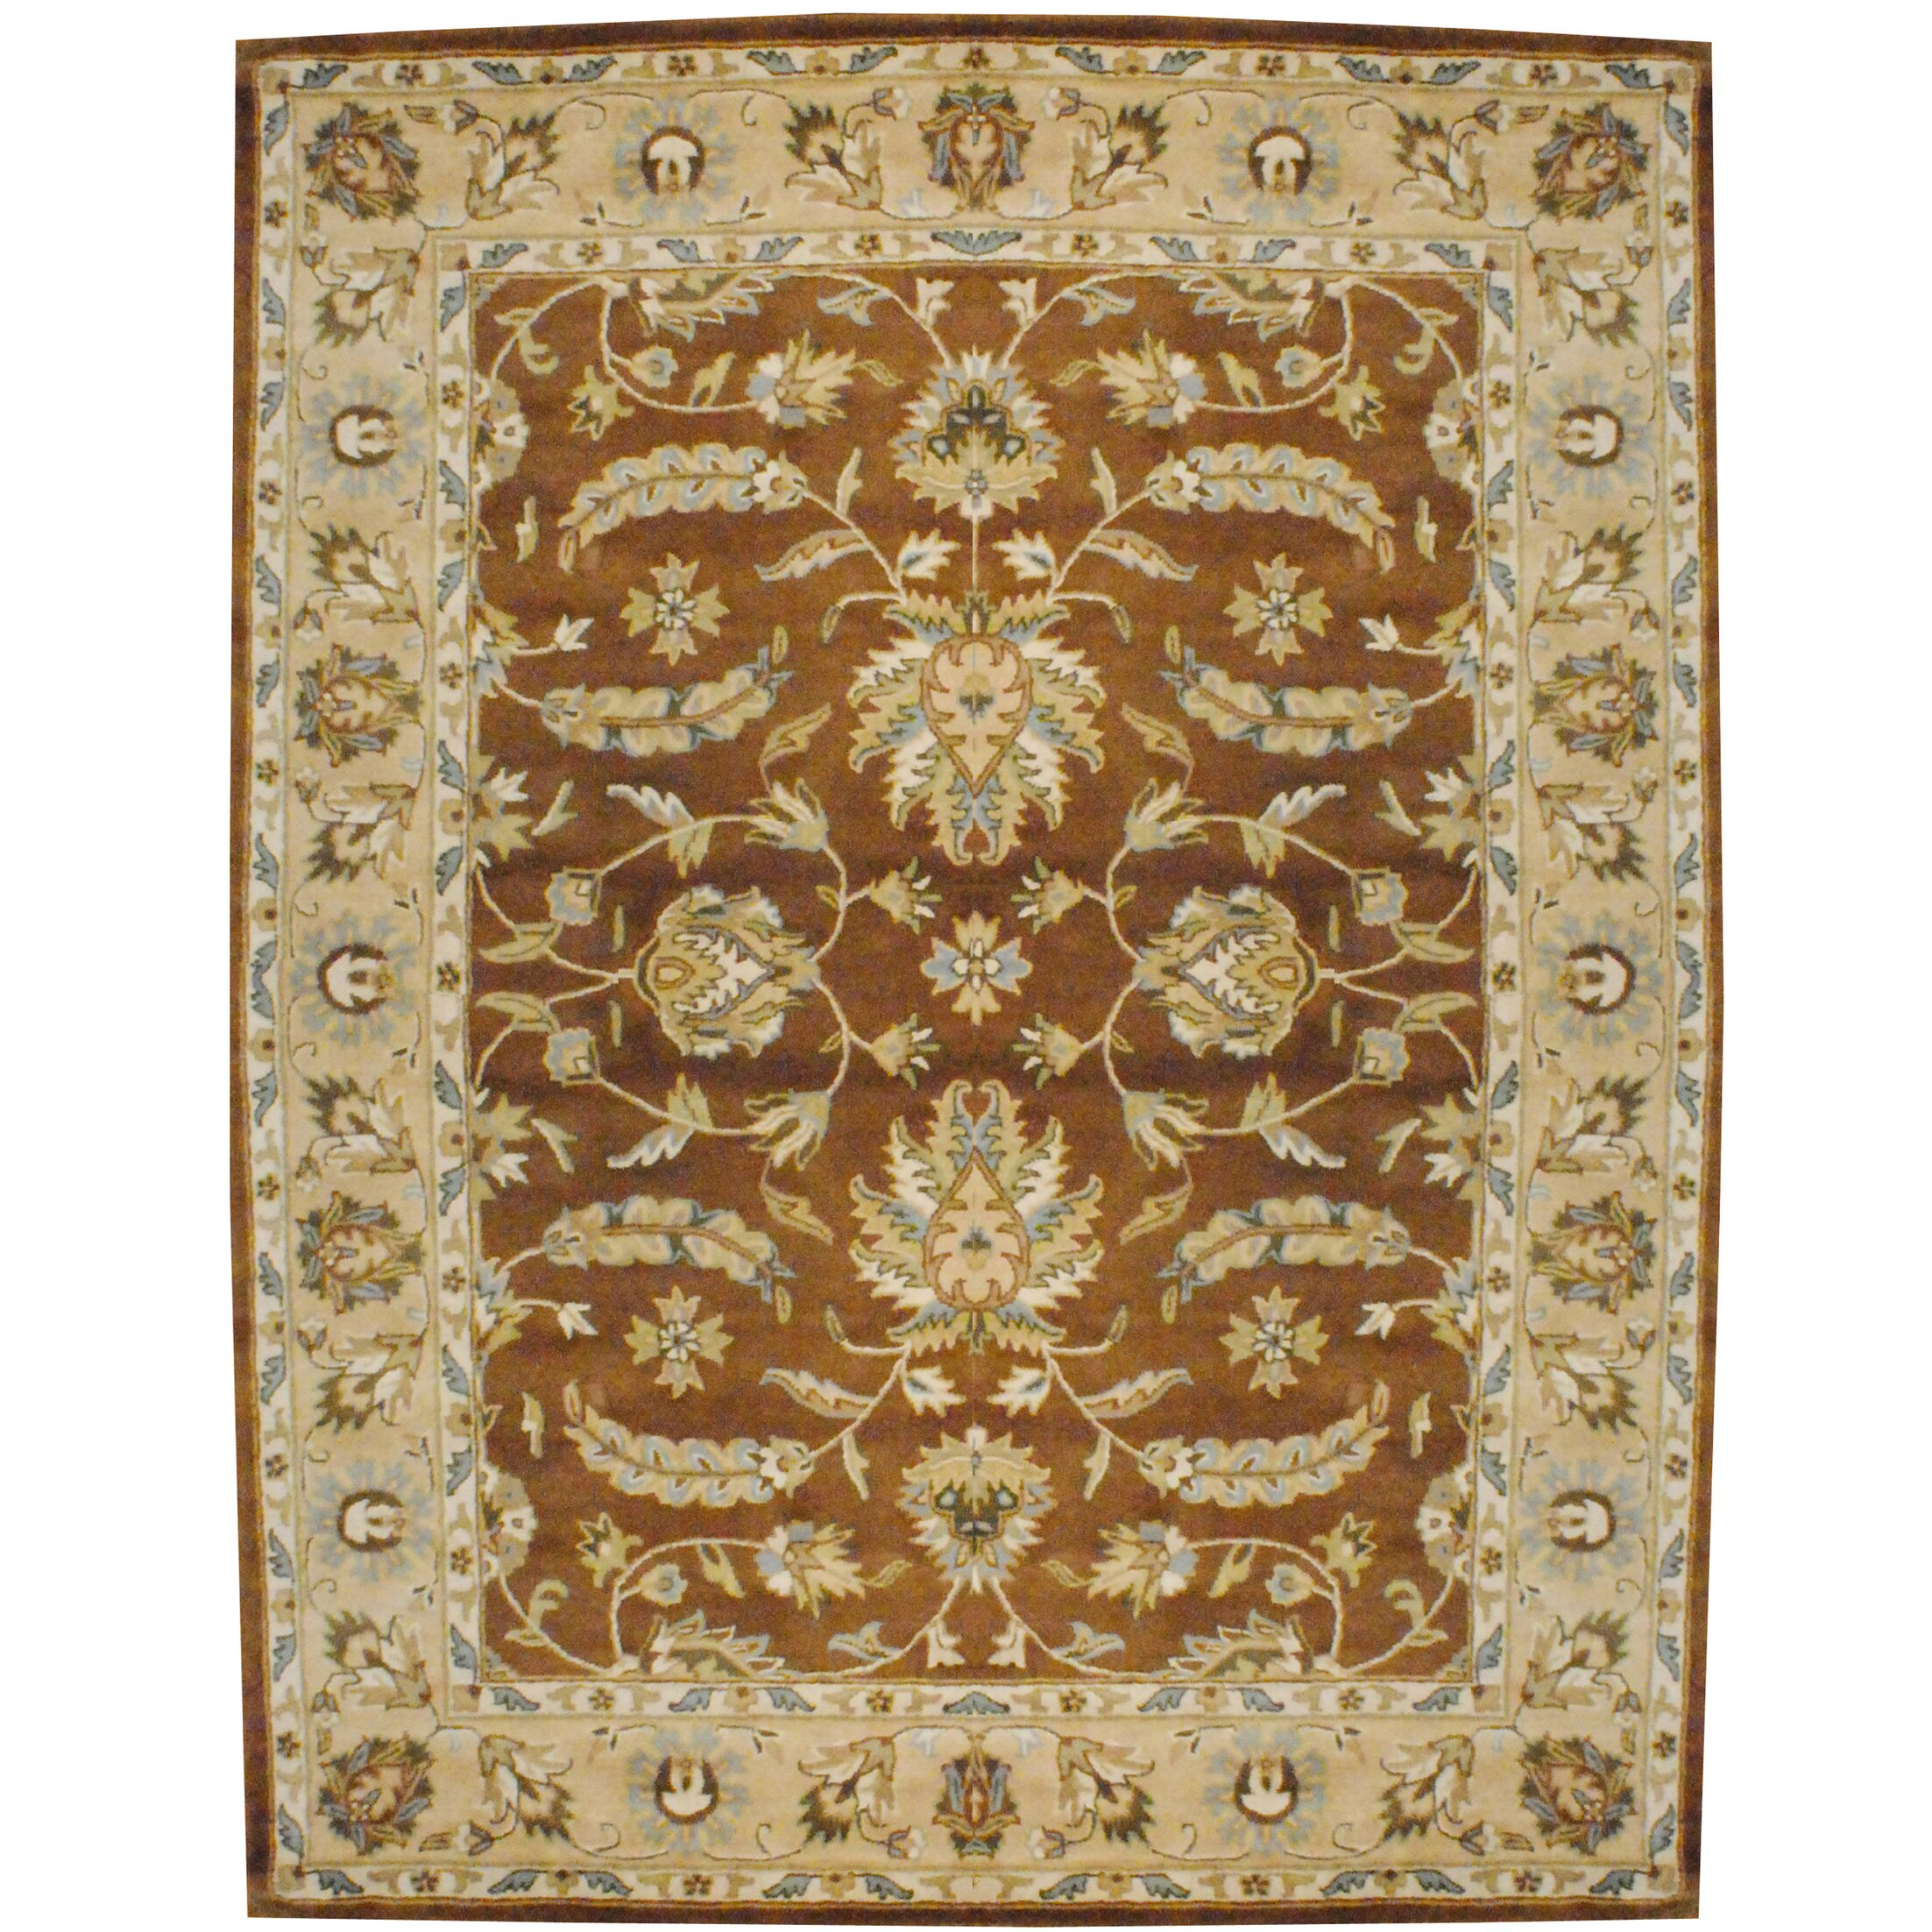 Hand-Tufted Wool Brown/Beige Area Rug Rug Size: Rectangle 8' x 10'